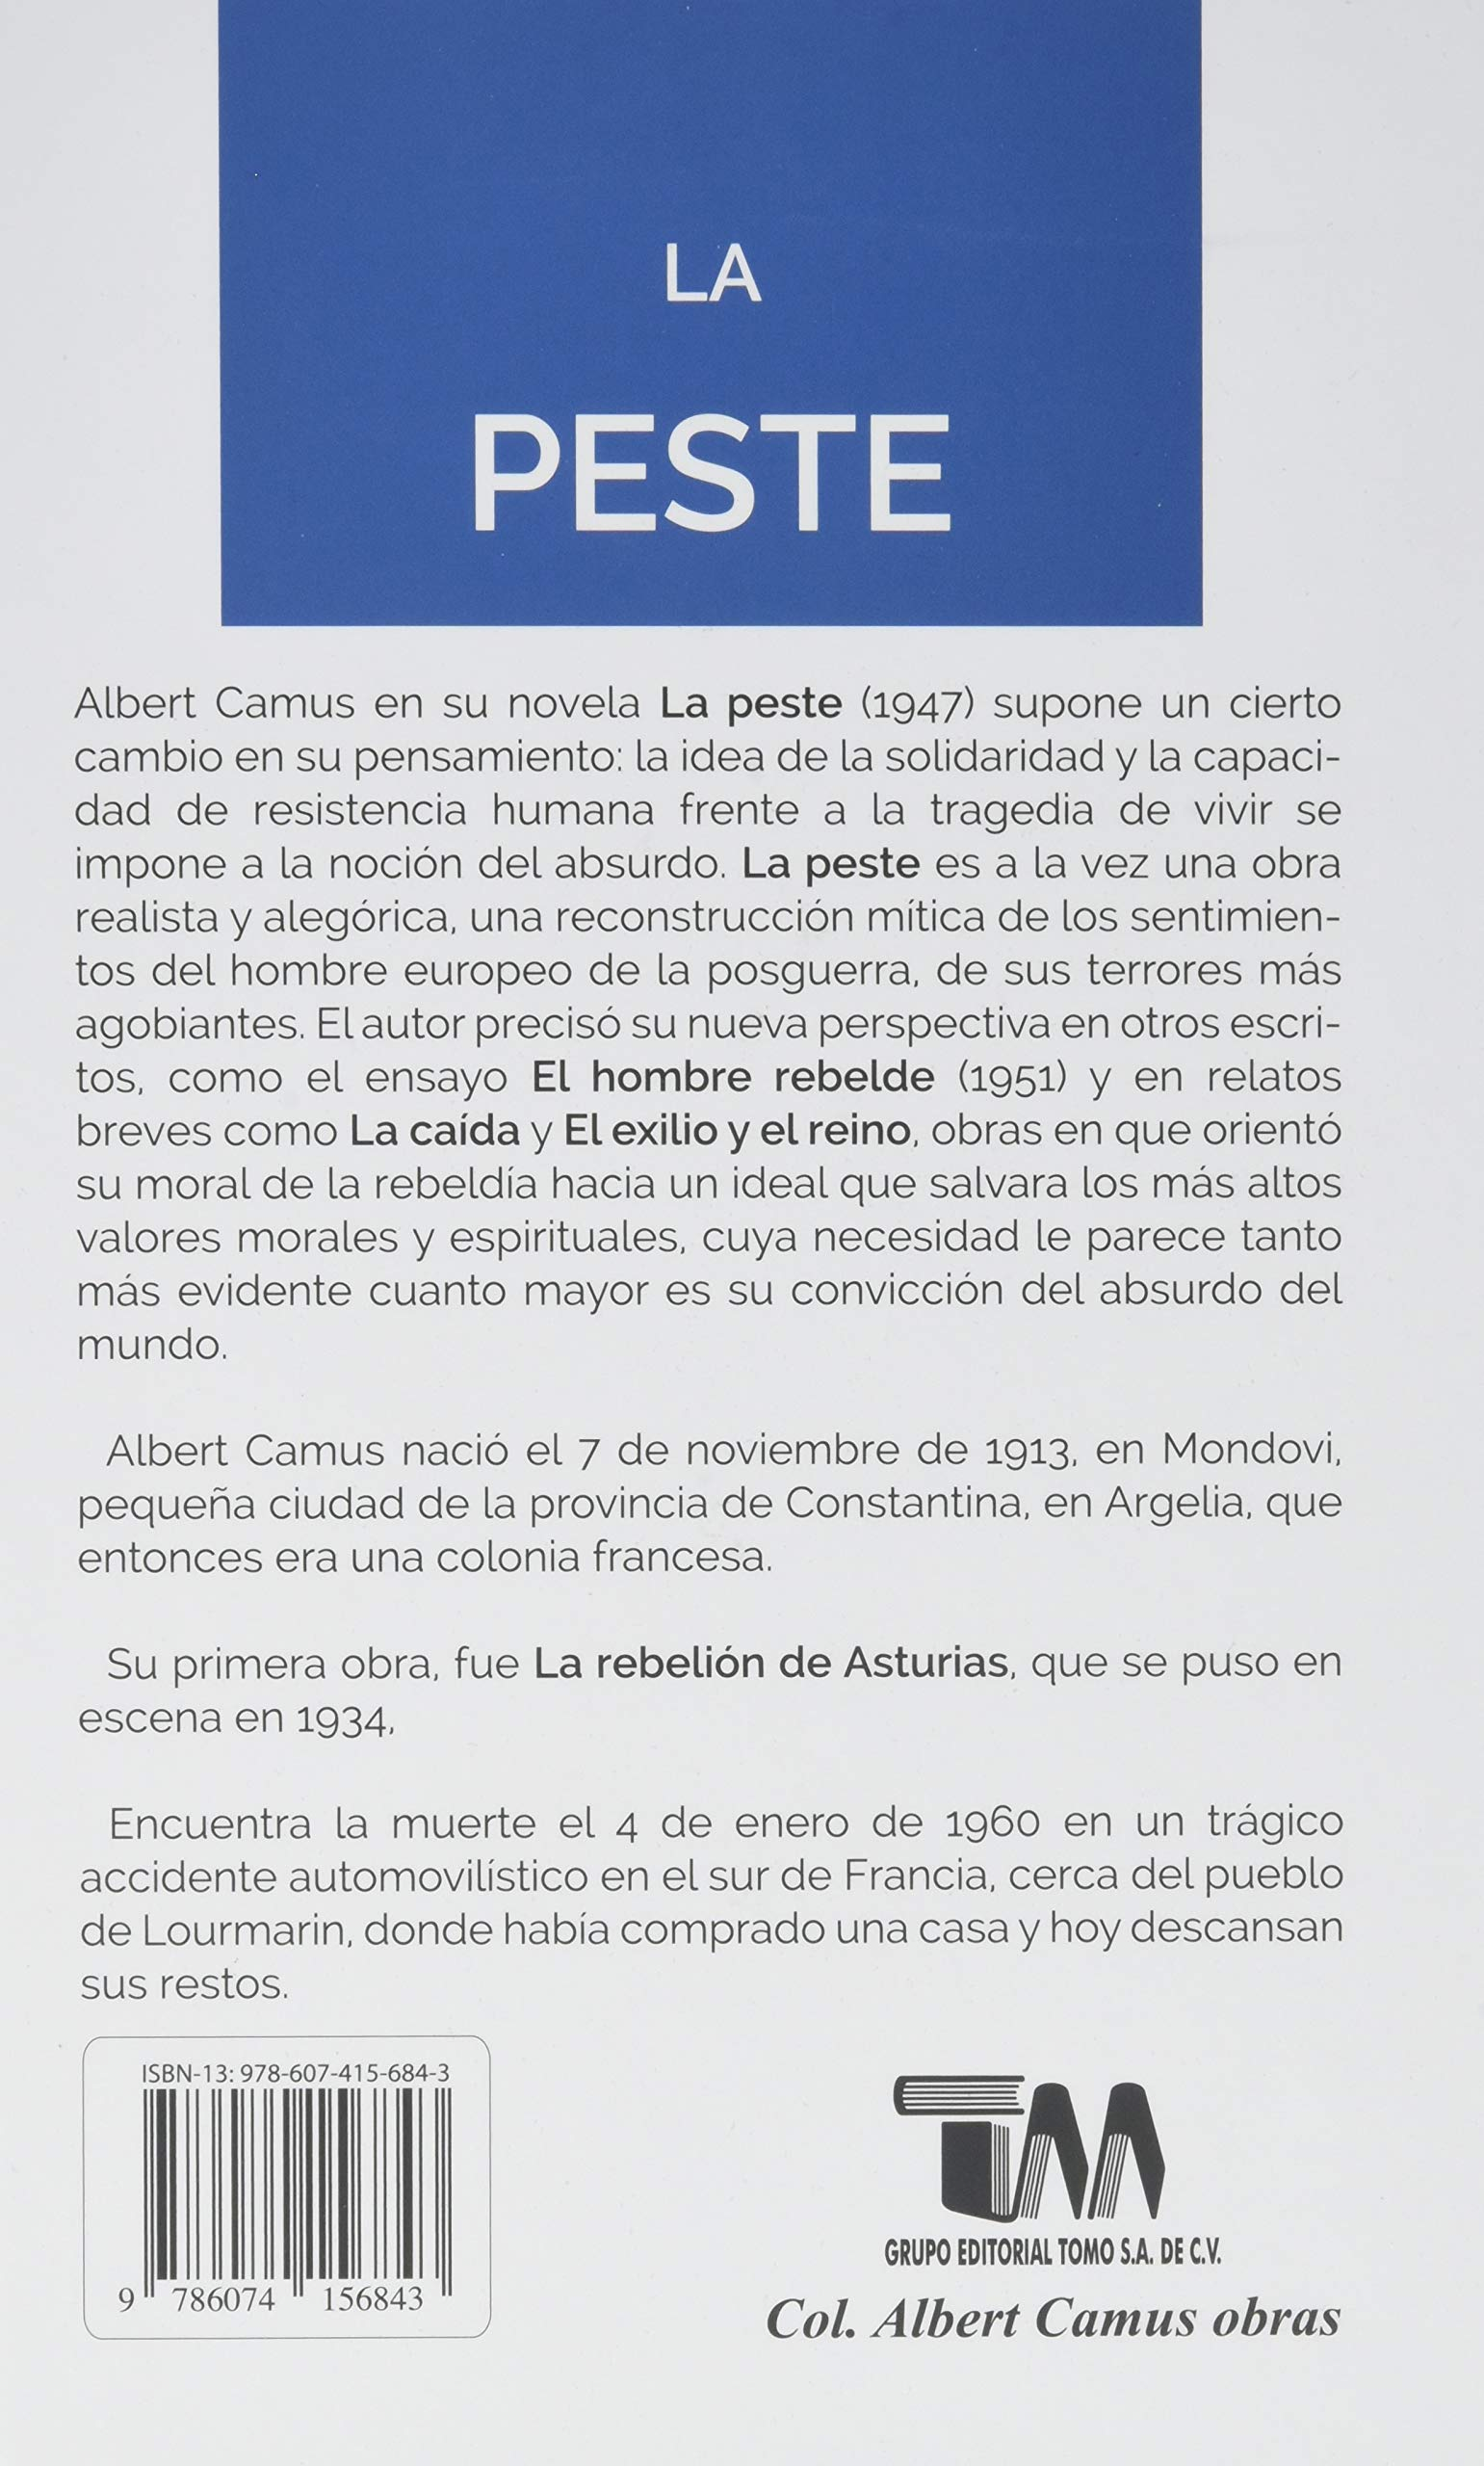 Amazon.com: La Peste: The Plague (English and Spanish Edition) (9786074156843): Albert Camus: Books